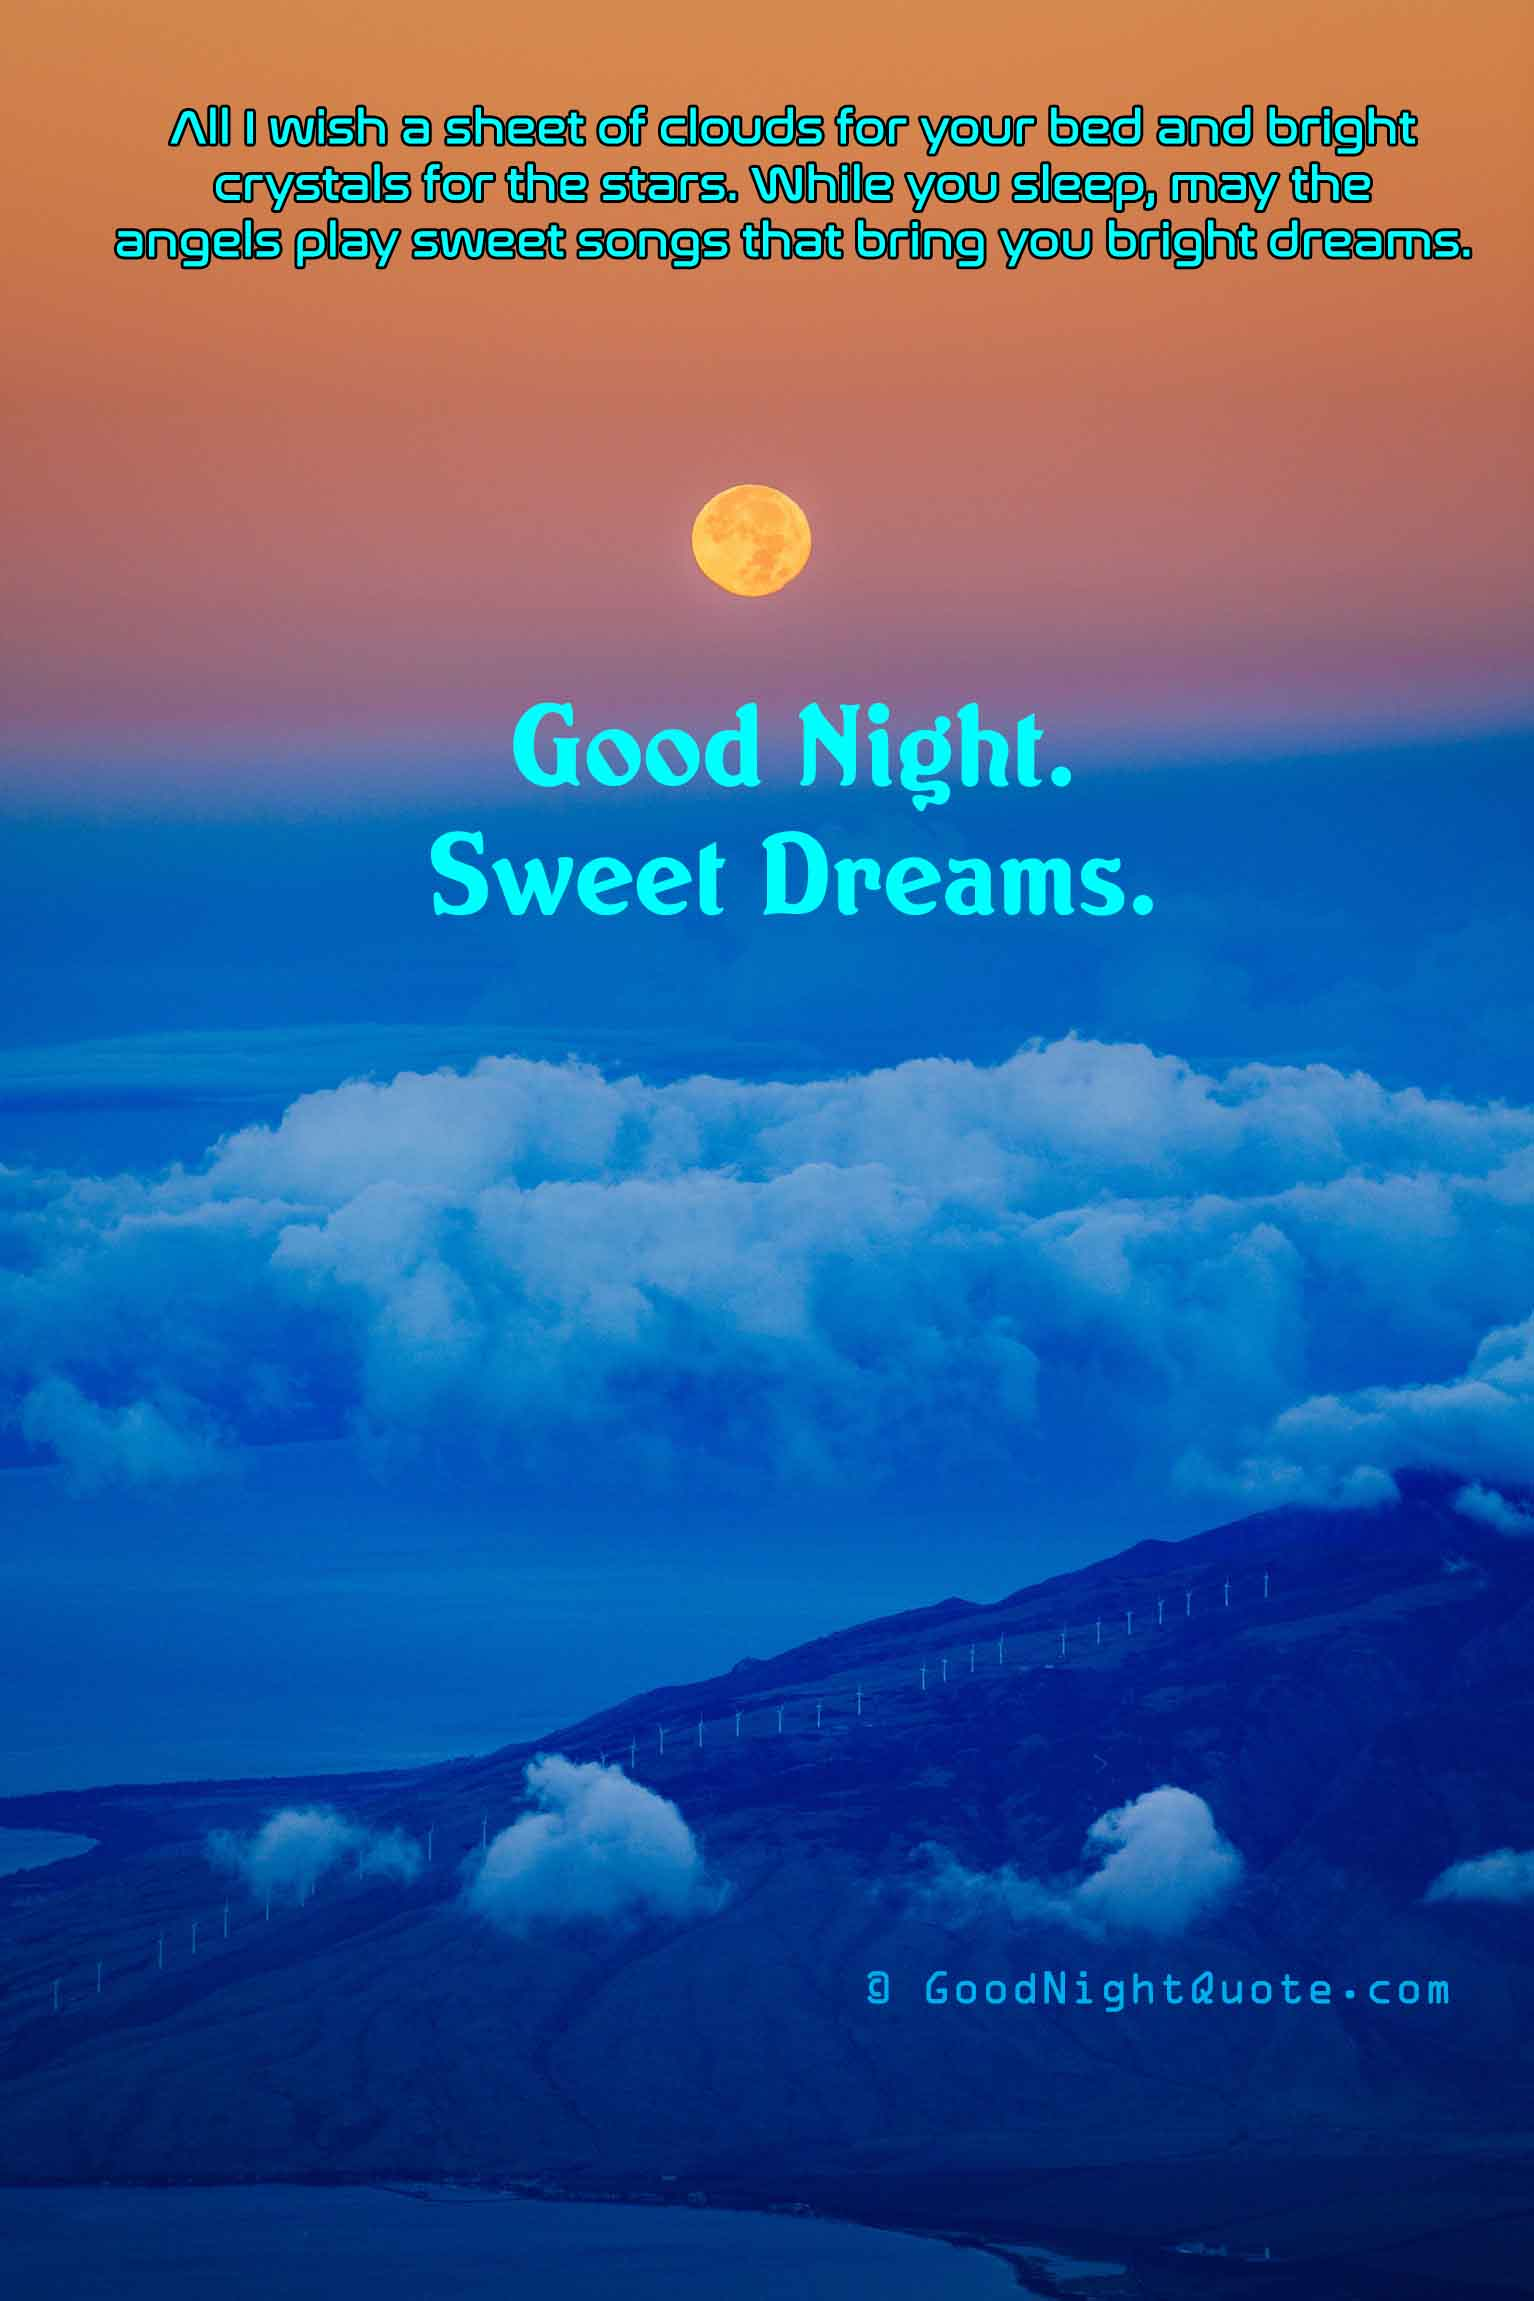 All good night image hd